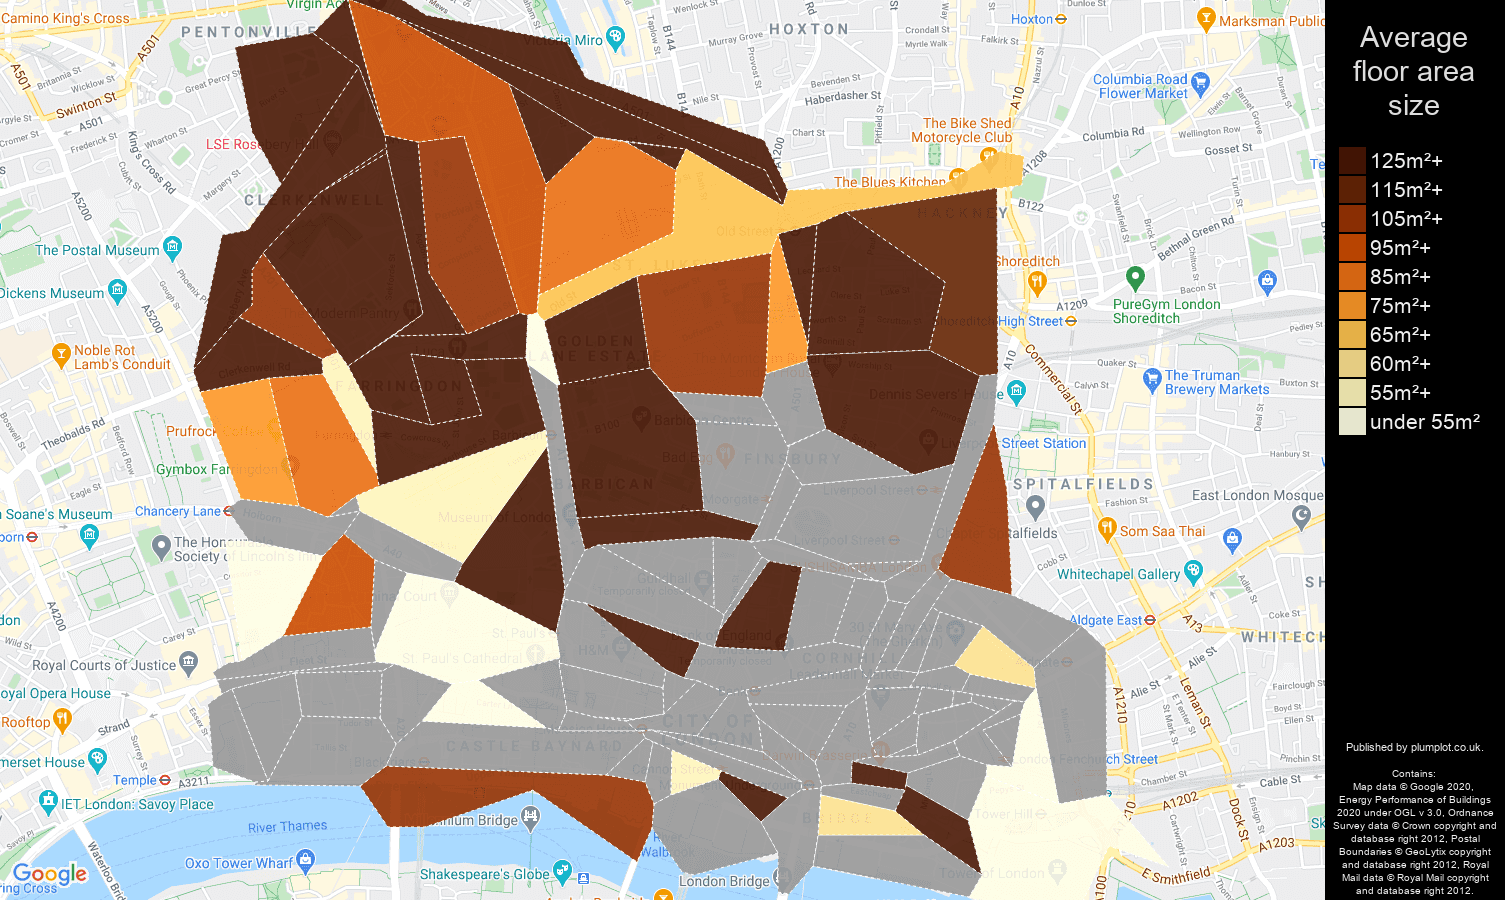 East Central London map of average floor area size of houses